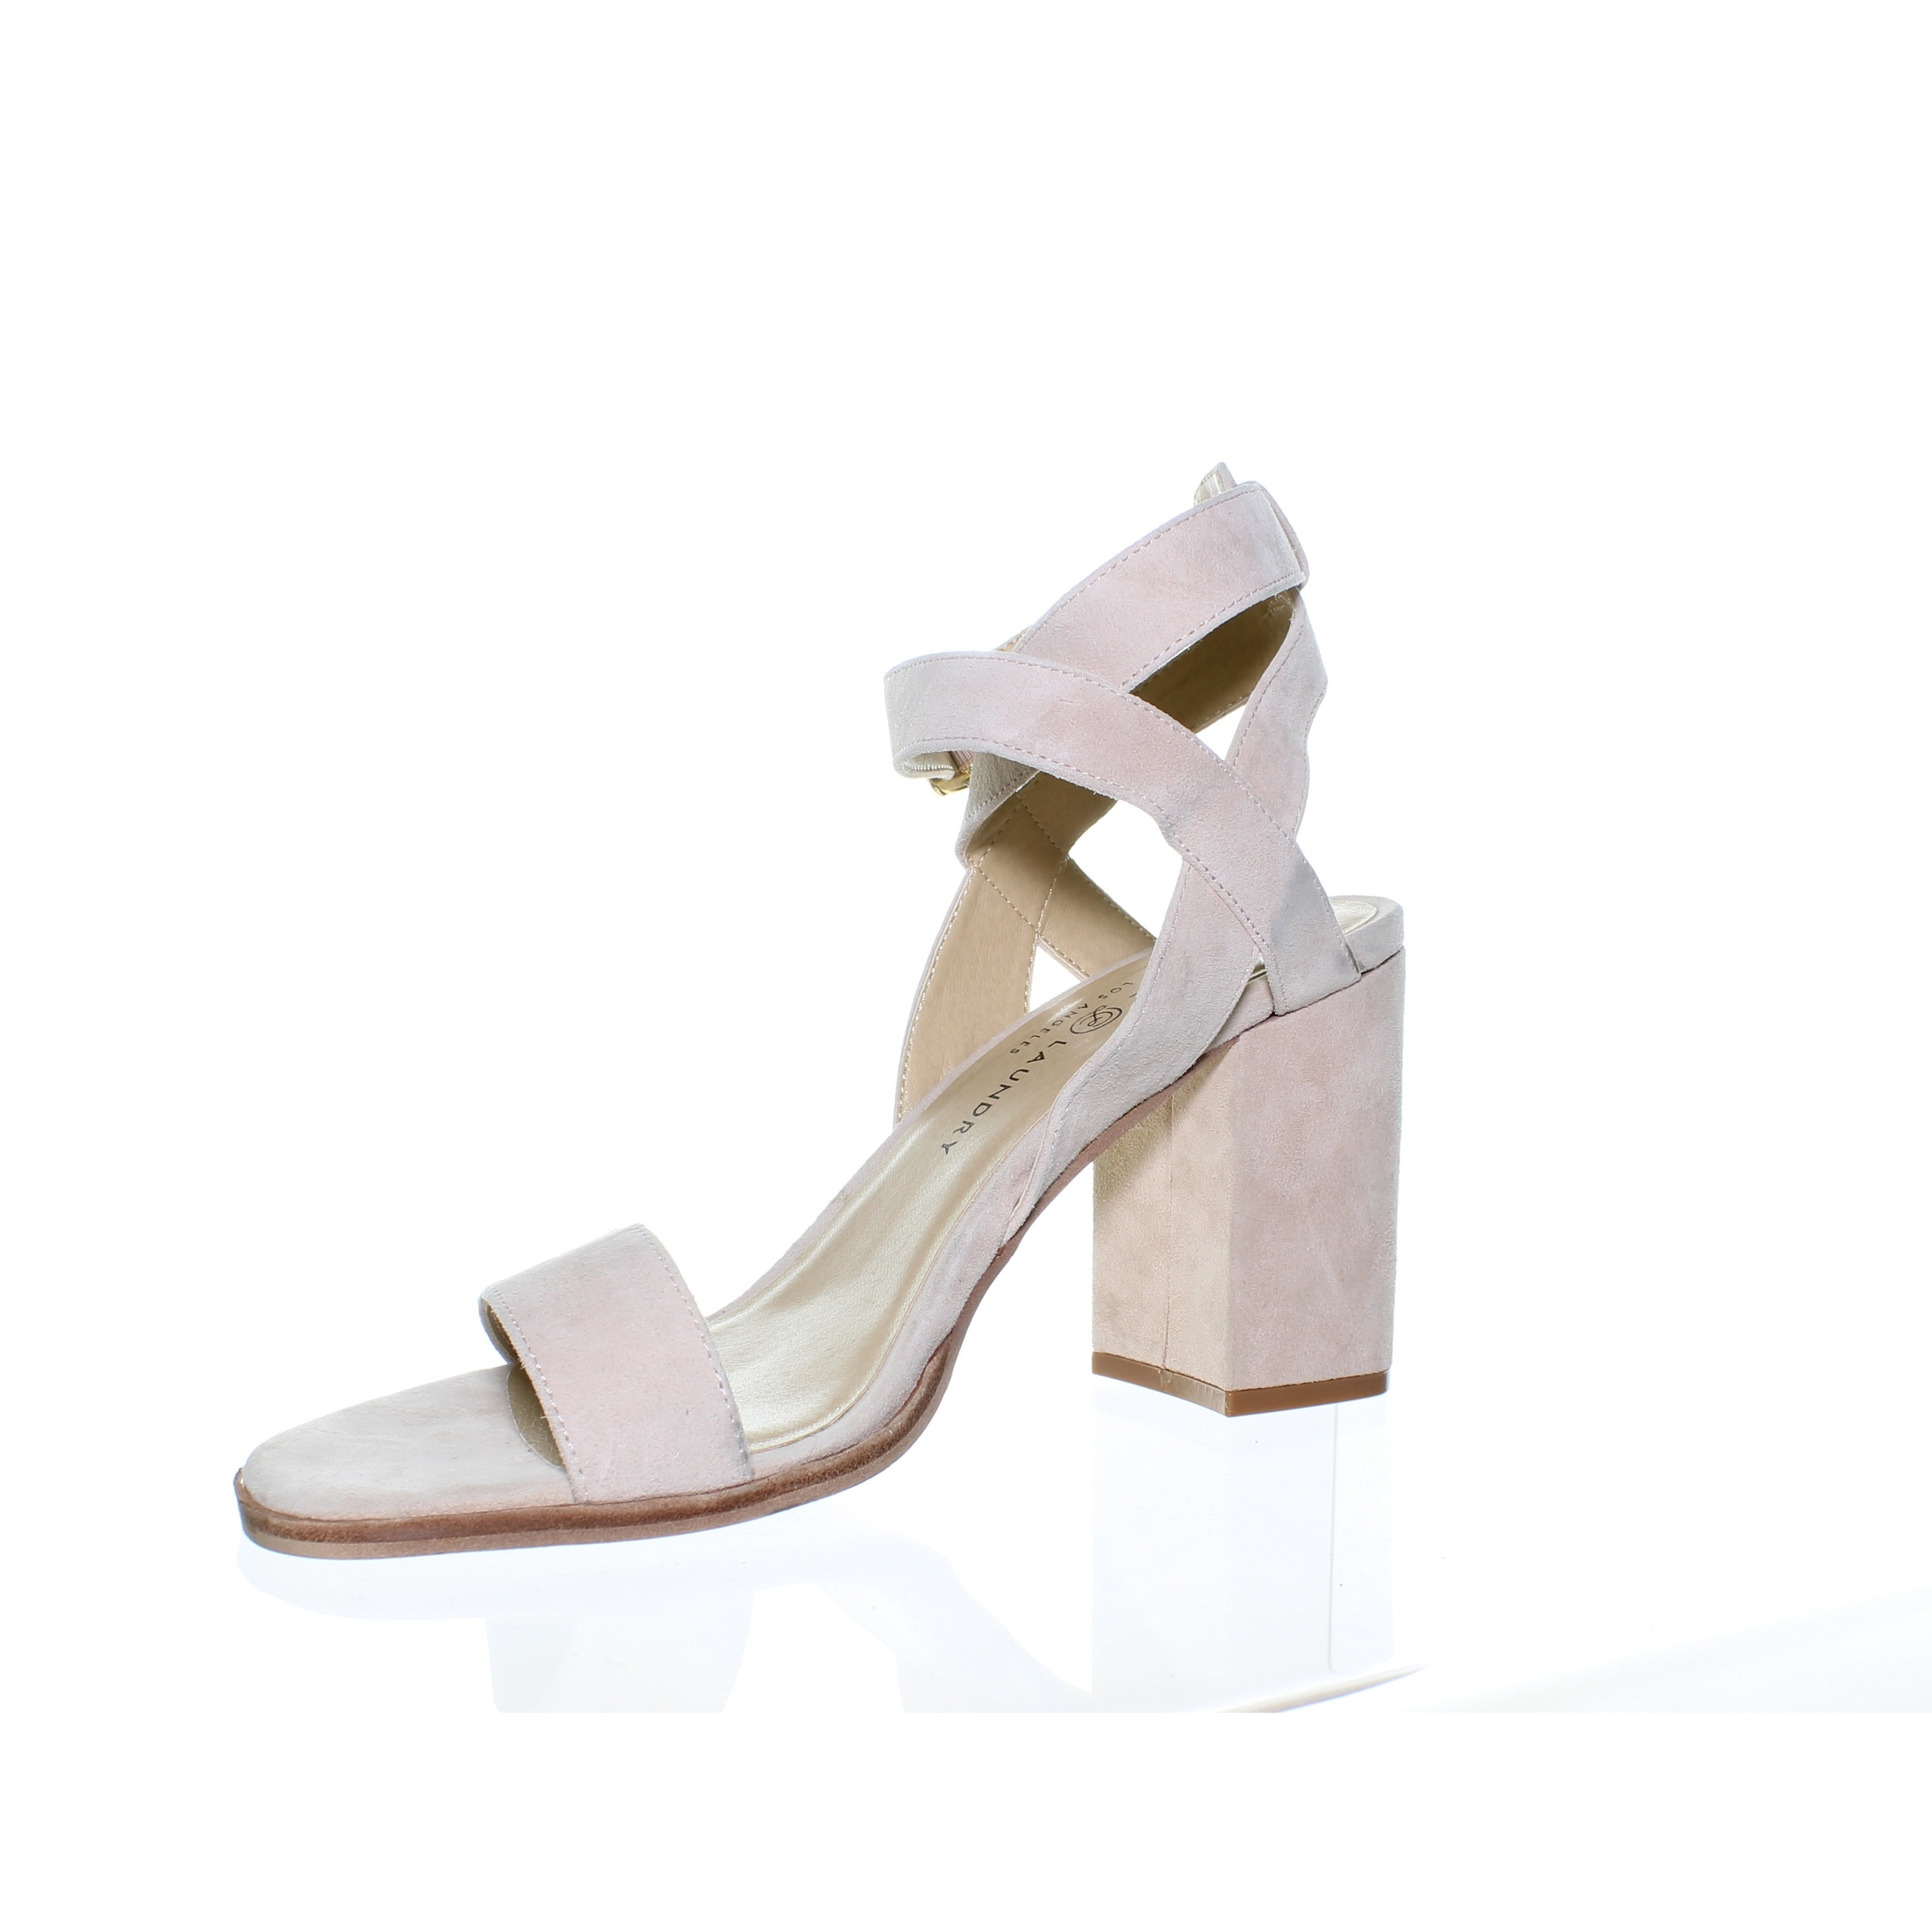 dda9316b133 Shop Chinese Laundry Womens Sitara Rose Suede Ankle Strap Heels Size 10 -  On Sale - Free Shipping On Orders Over  45 - Overstock - 25893013